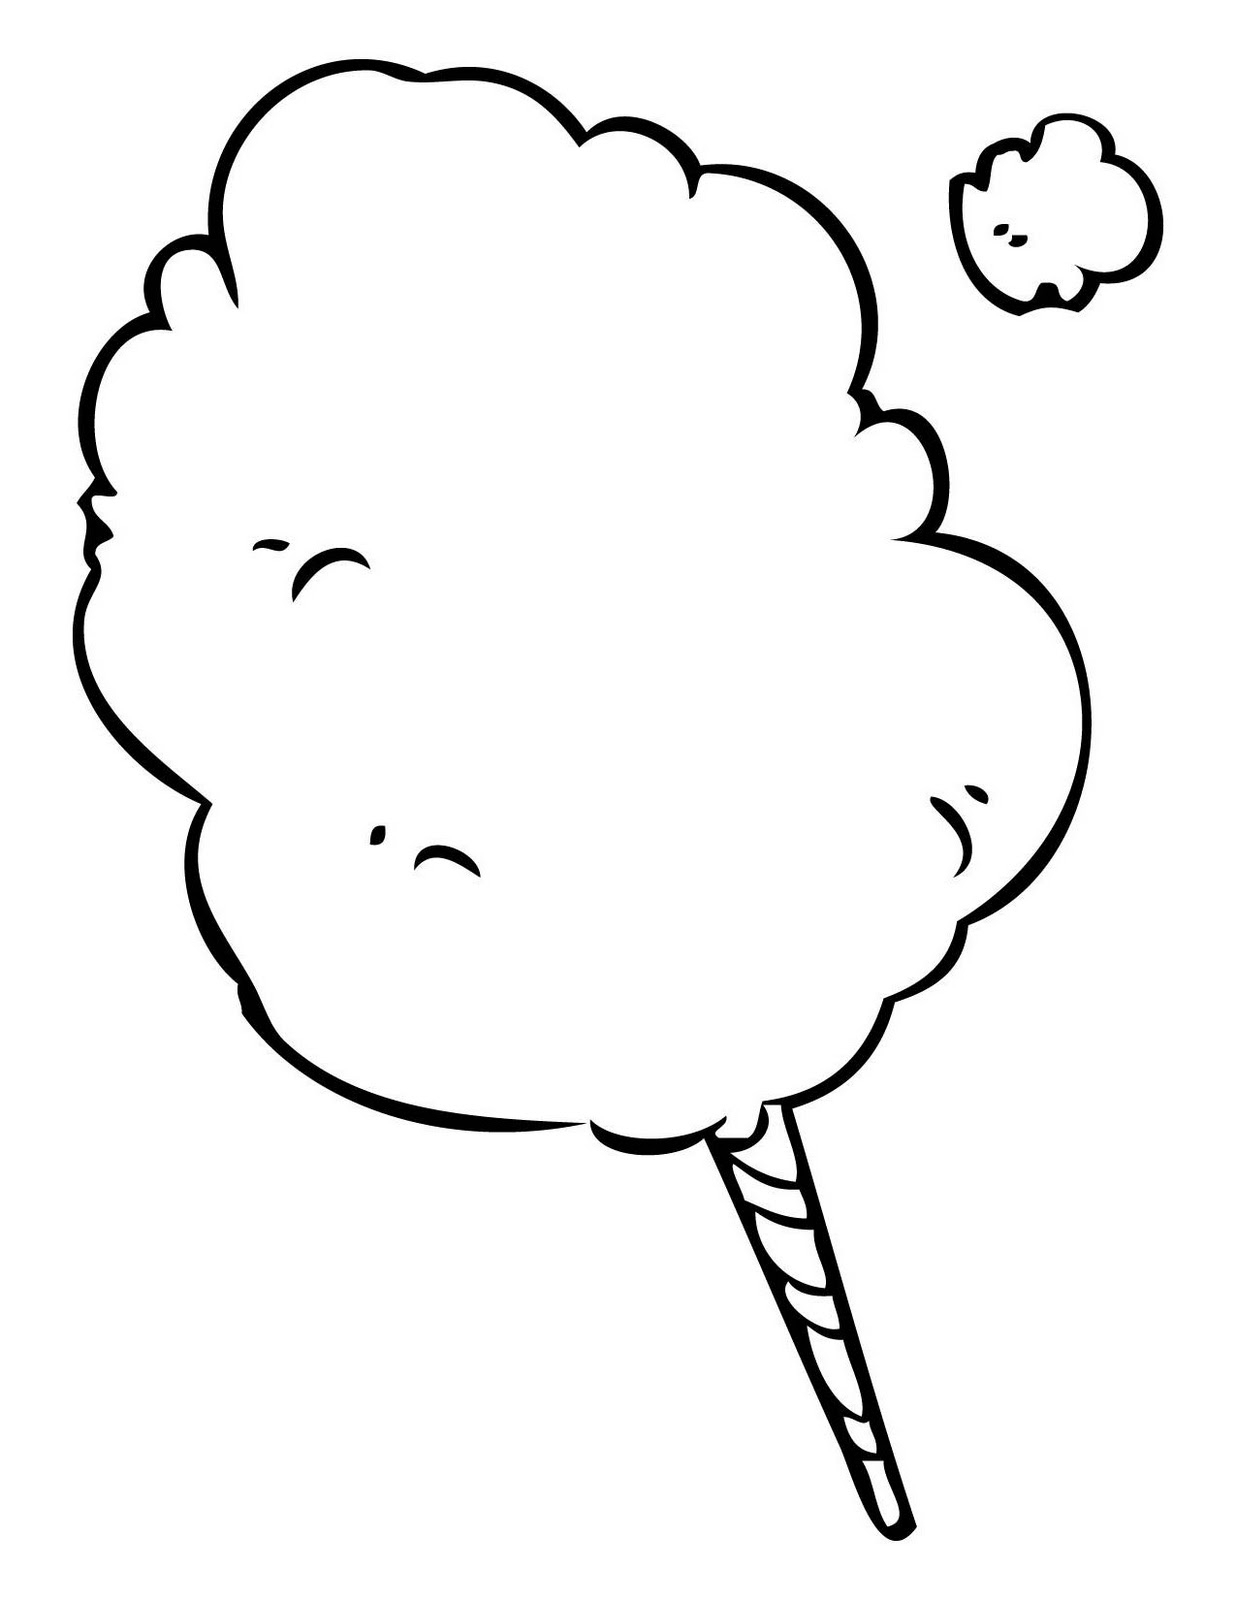 1236x1600 Cotton Candy Drawing White Cotton Candy Clipart